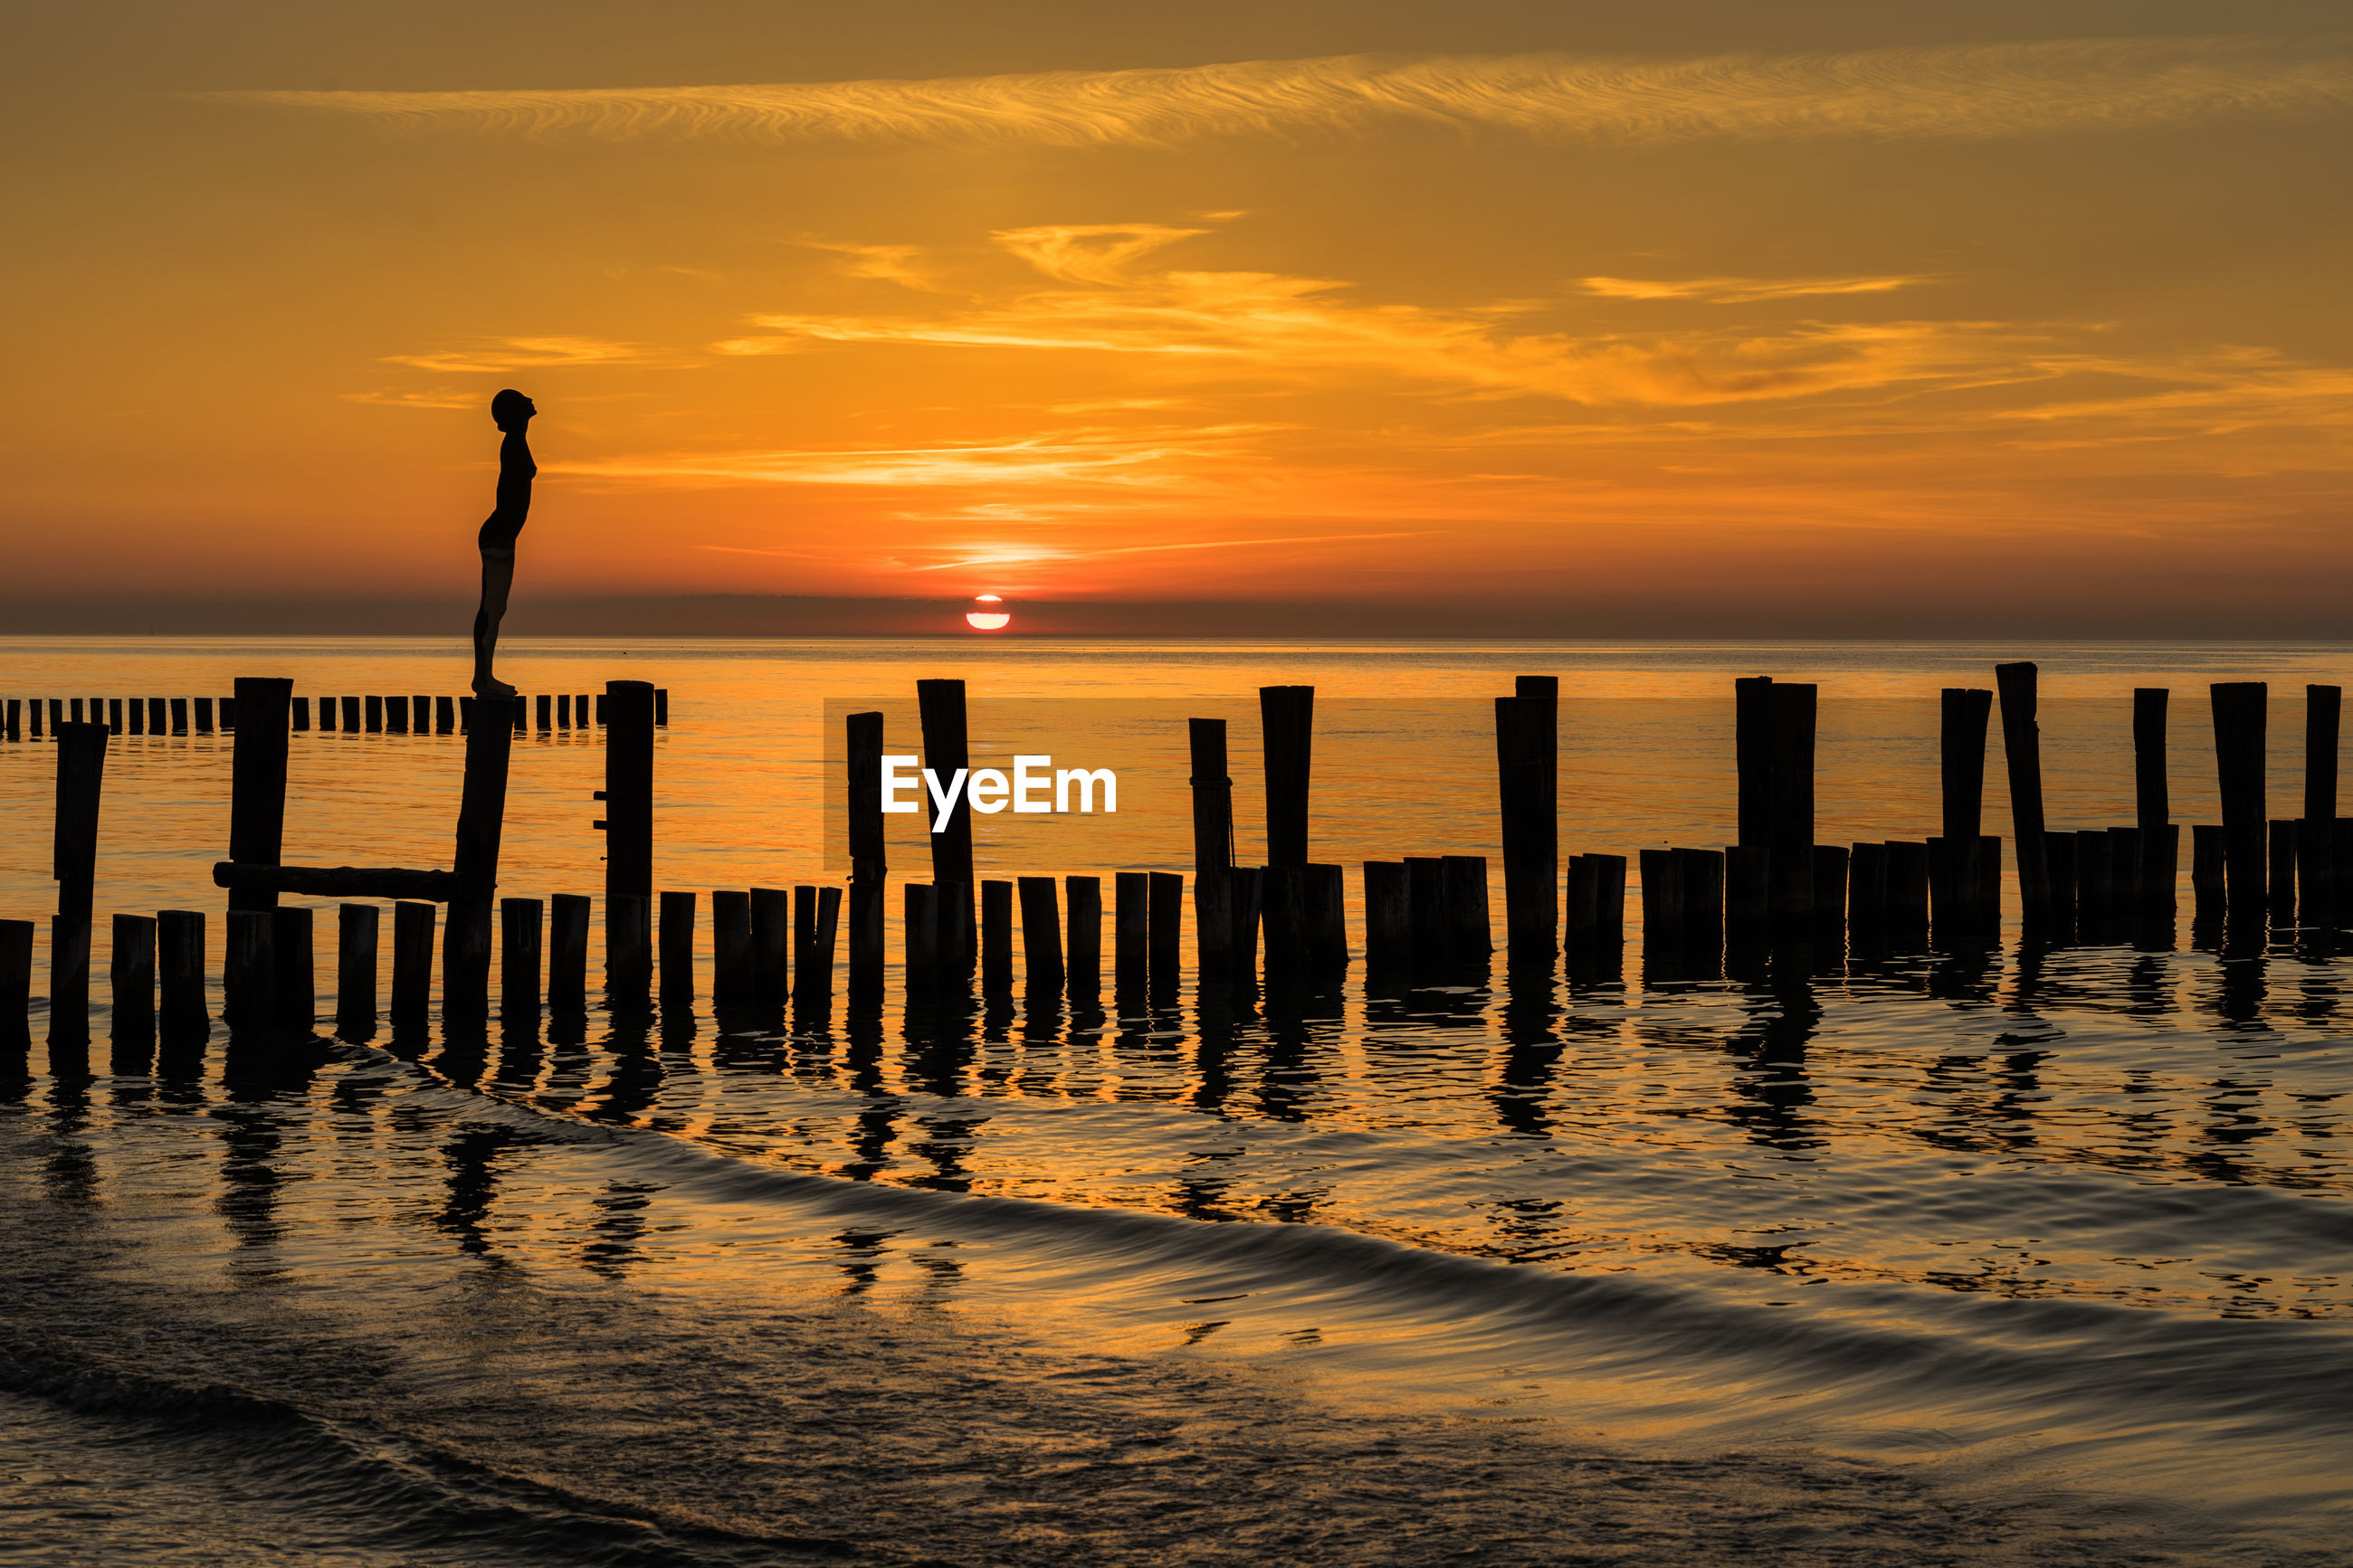 Silhouette woman standing on wooden post at beach against sky during sunset